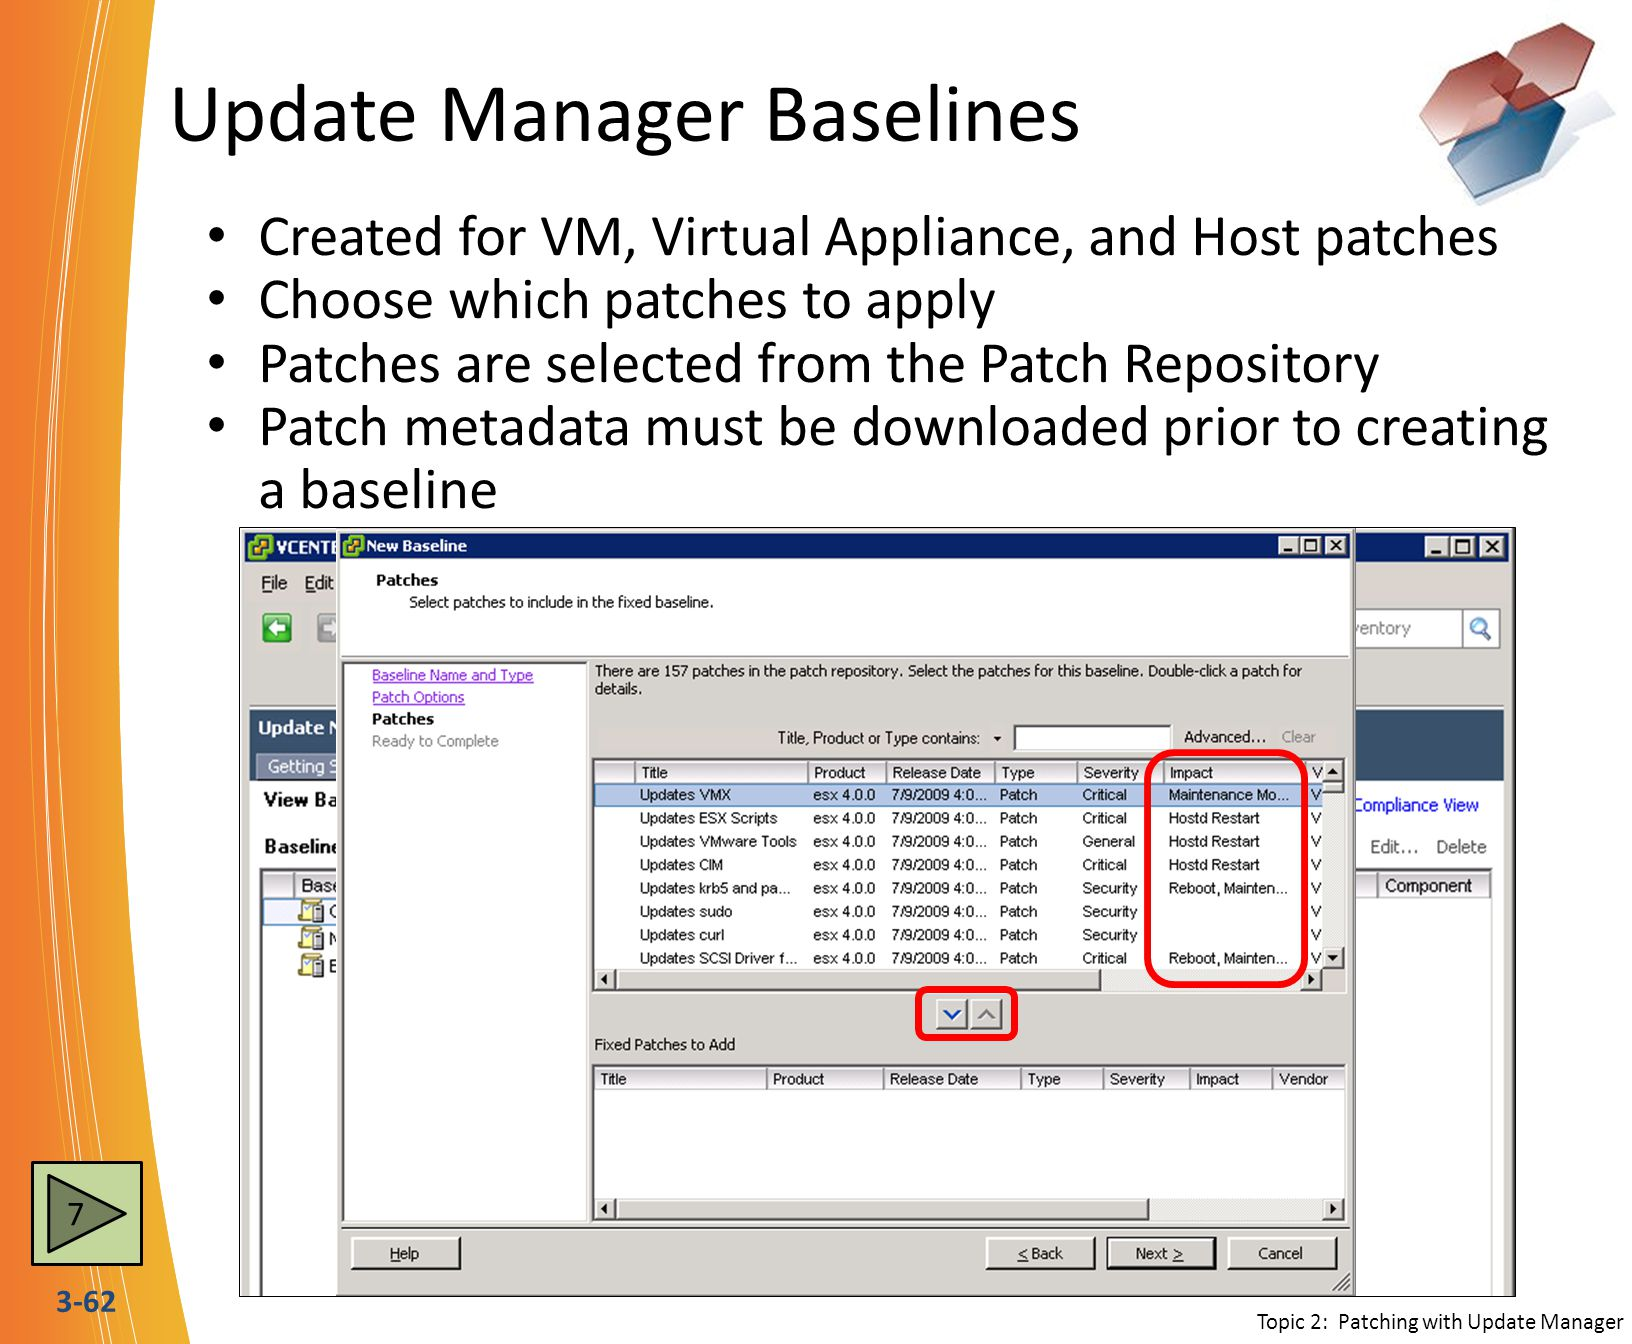 3-62 Update Manager Baselines Created for VM, Virtual Appliance, and Host patches Choose which patches to apply Patches are selected from the Patch Re